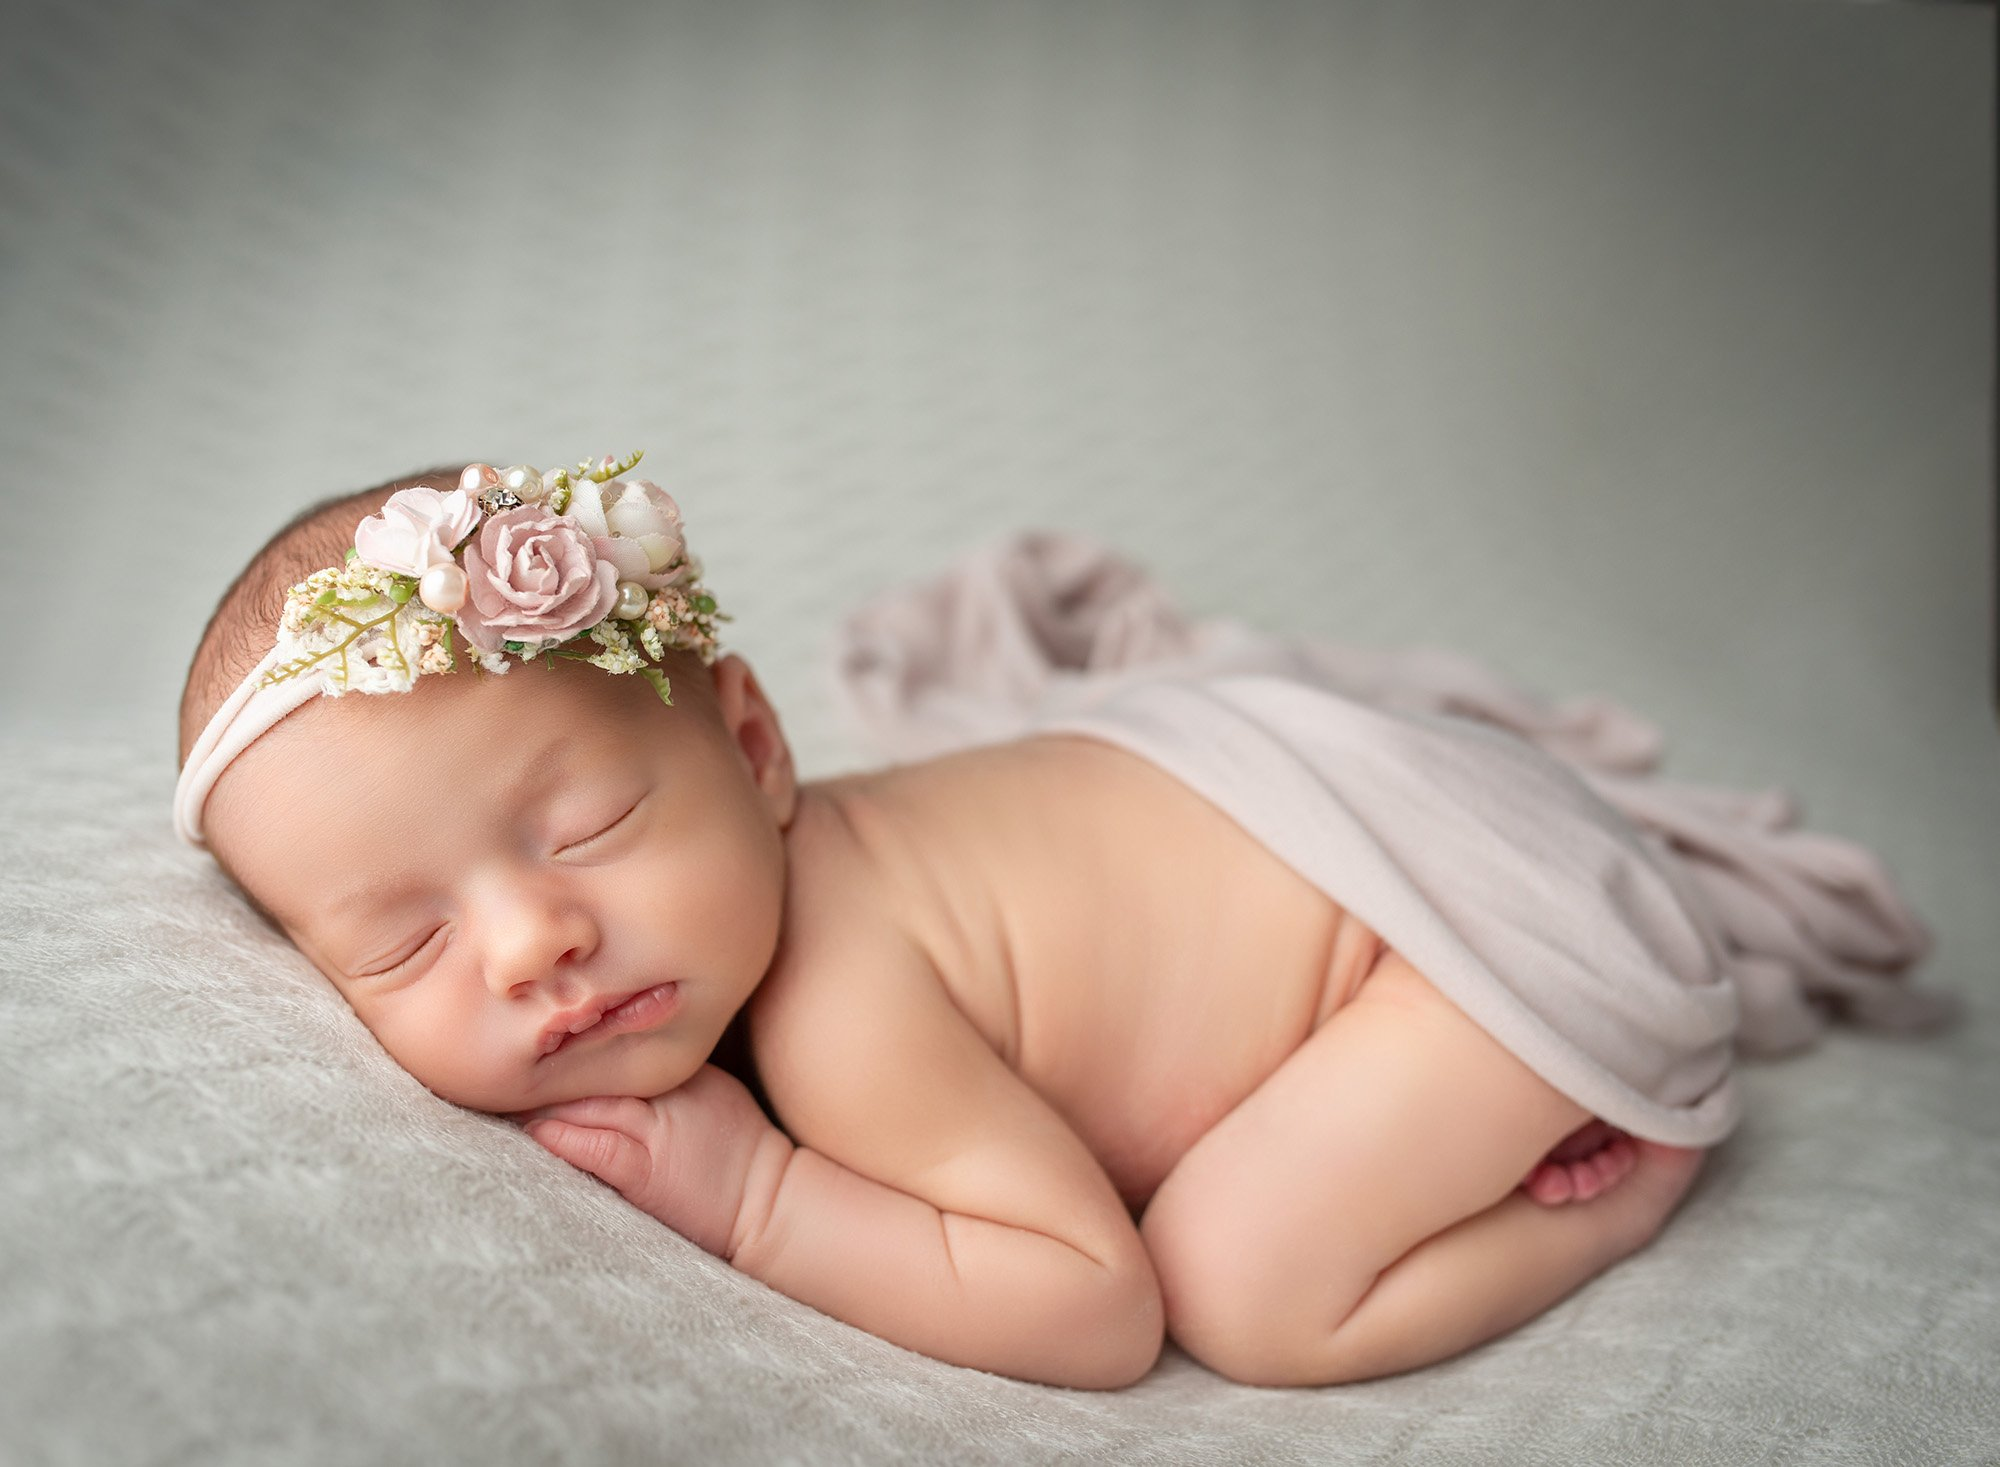 newborn baby girl laying naked with floral headband on white blanket